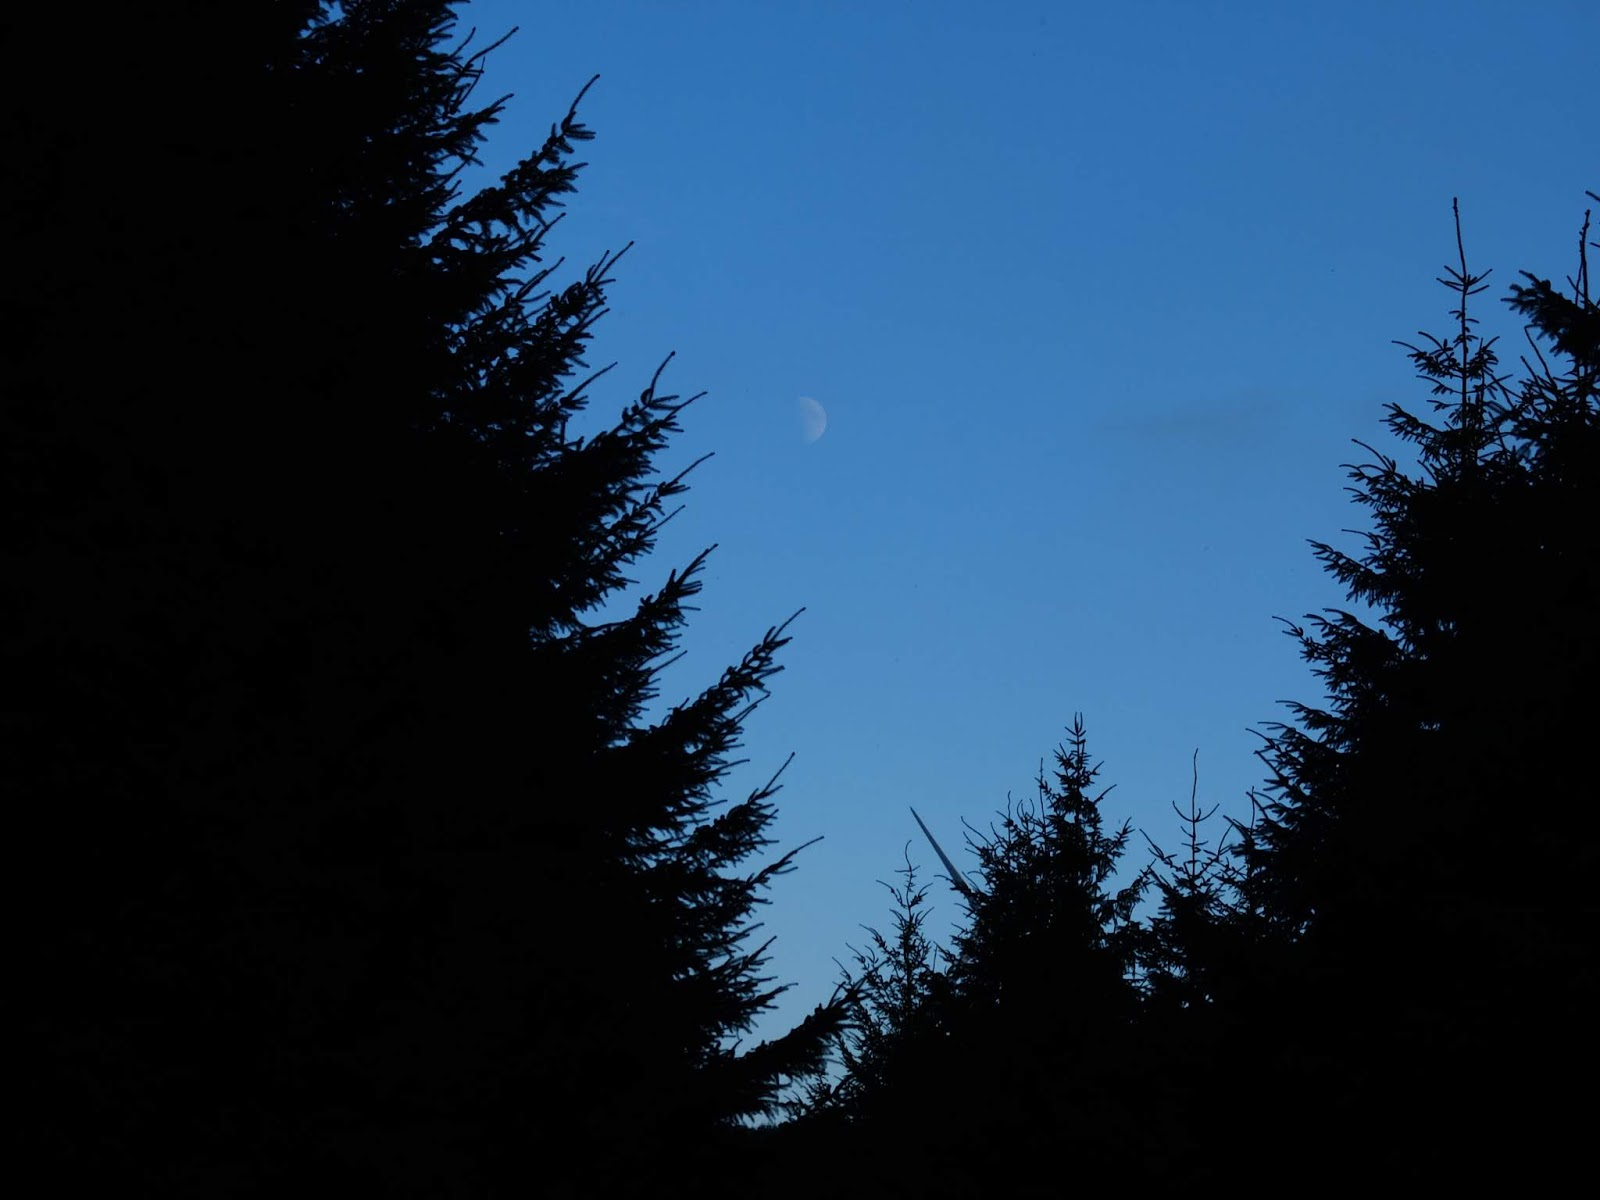 A faint half moon over the silhouette of a forestry in the Boggeragh Mountains.